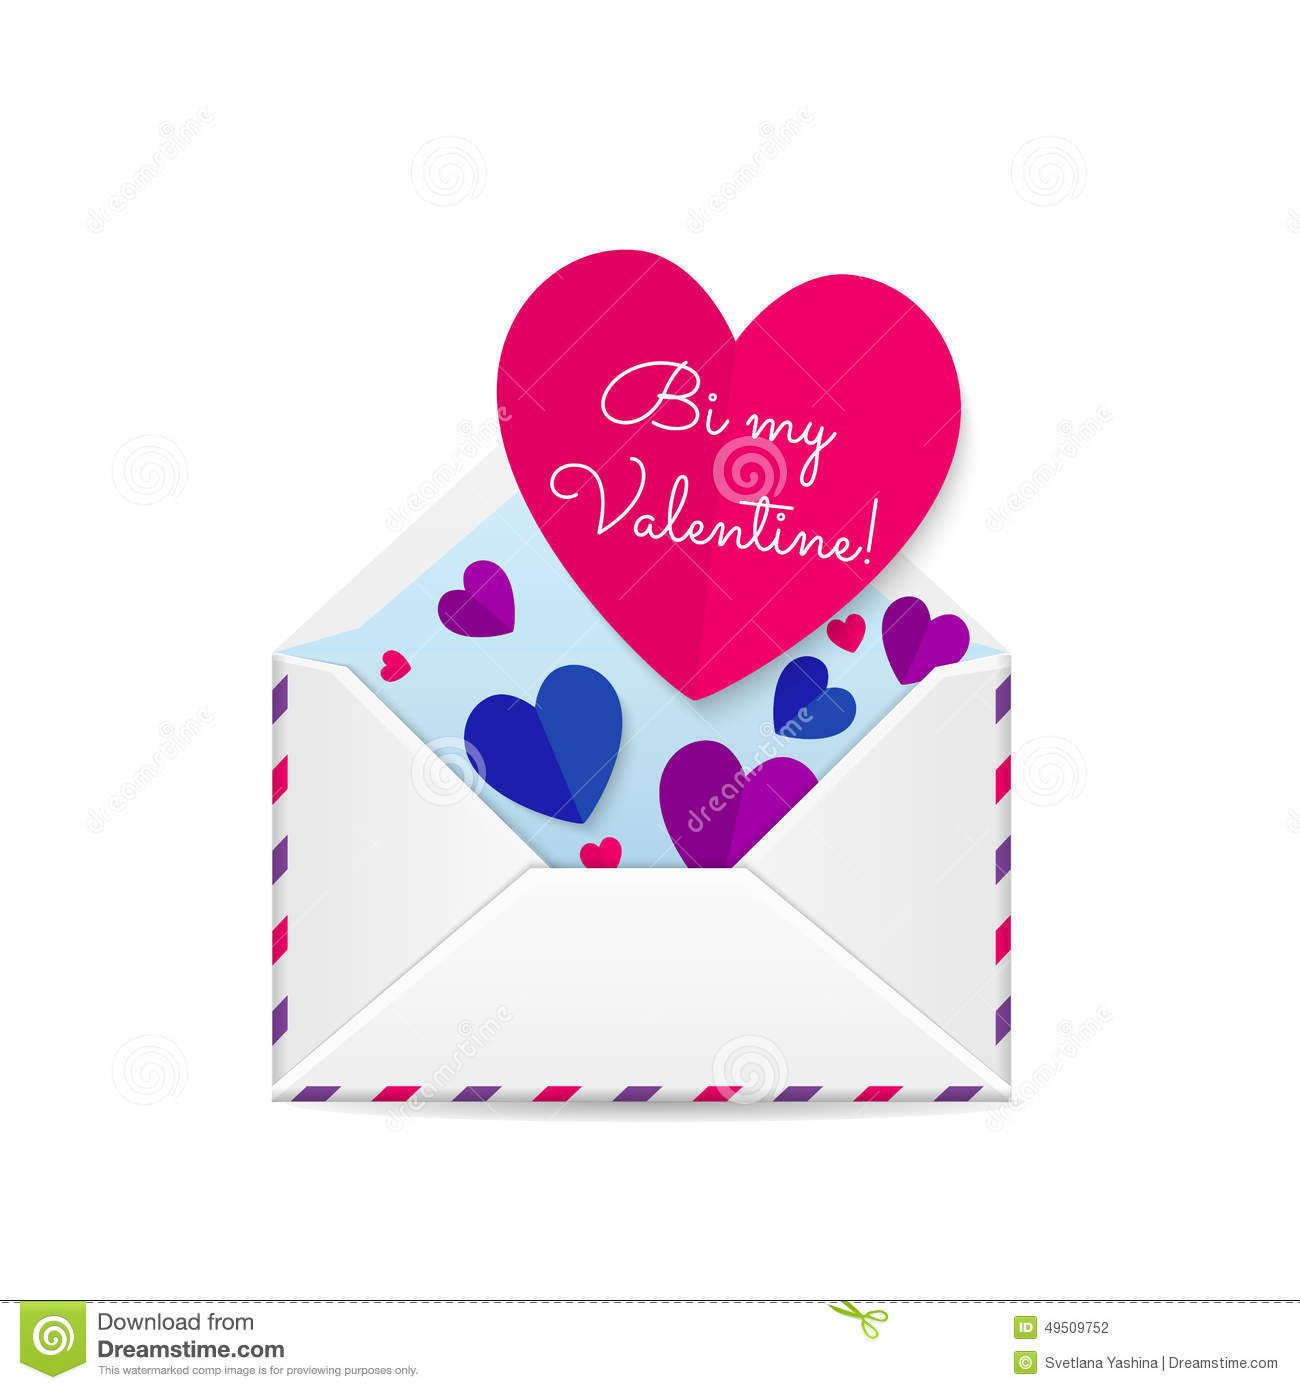 valentines-bisexual-card-vector-day-illustration-open-envelope-paper-hearts-isolated-white-background-colors-49509752 Bisexual Colors